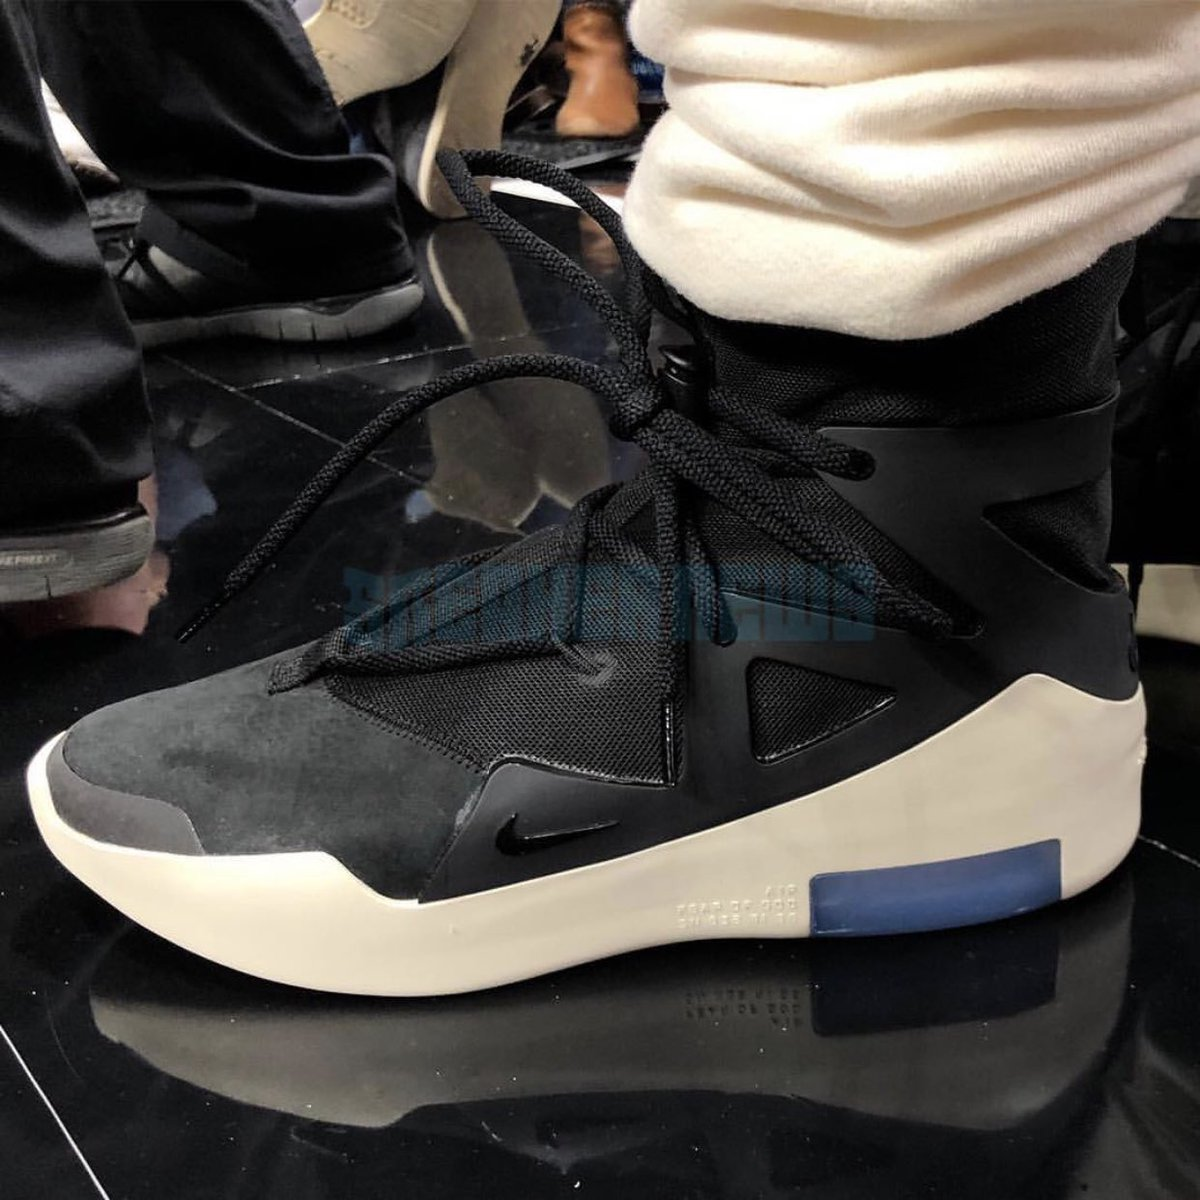 fd2635ecae8 Nike Air Fear Of God 1  Black White  revealed by  JERRYlorenzo while at the  Lakers Blazers game. Pics sourced via  SneakerNews   snkr twitrpic.twitter.com  ...